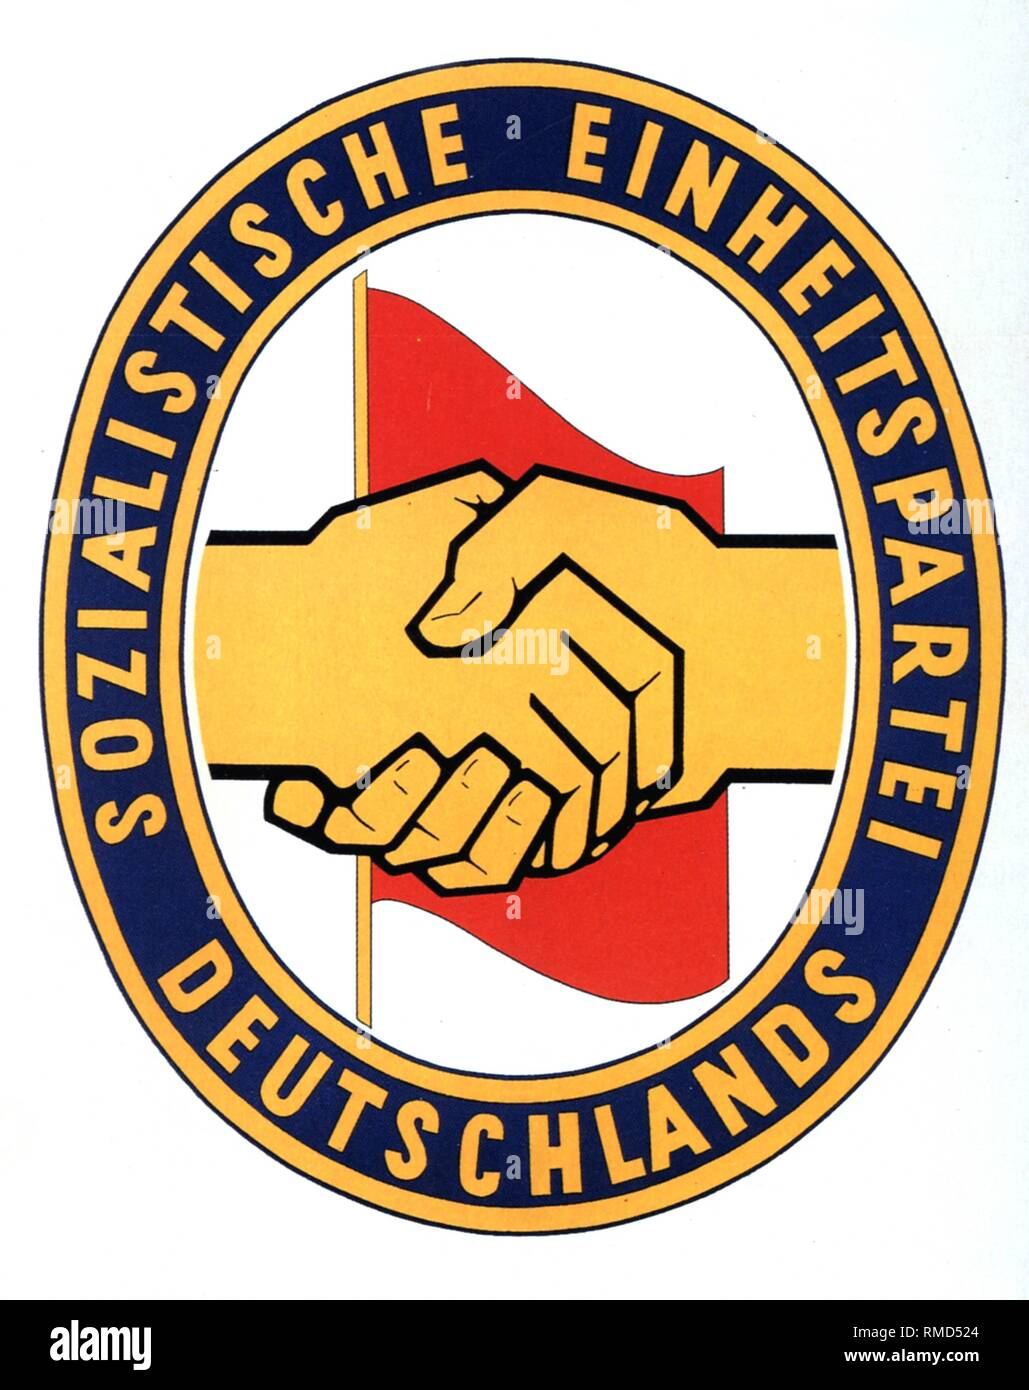 Emblem of the Socialist Unity Party of Germany (SED) of the GDR. - Stock Image